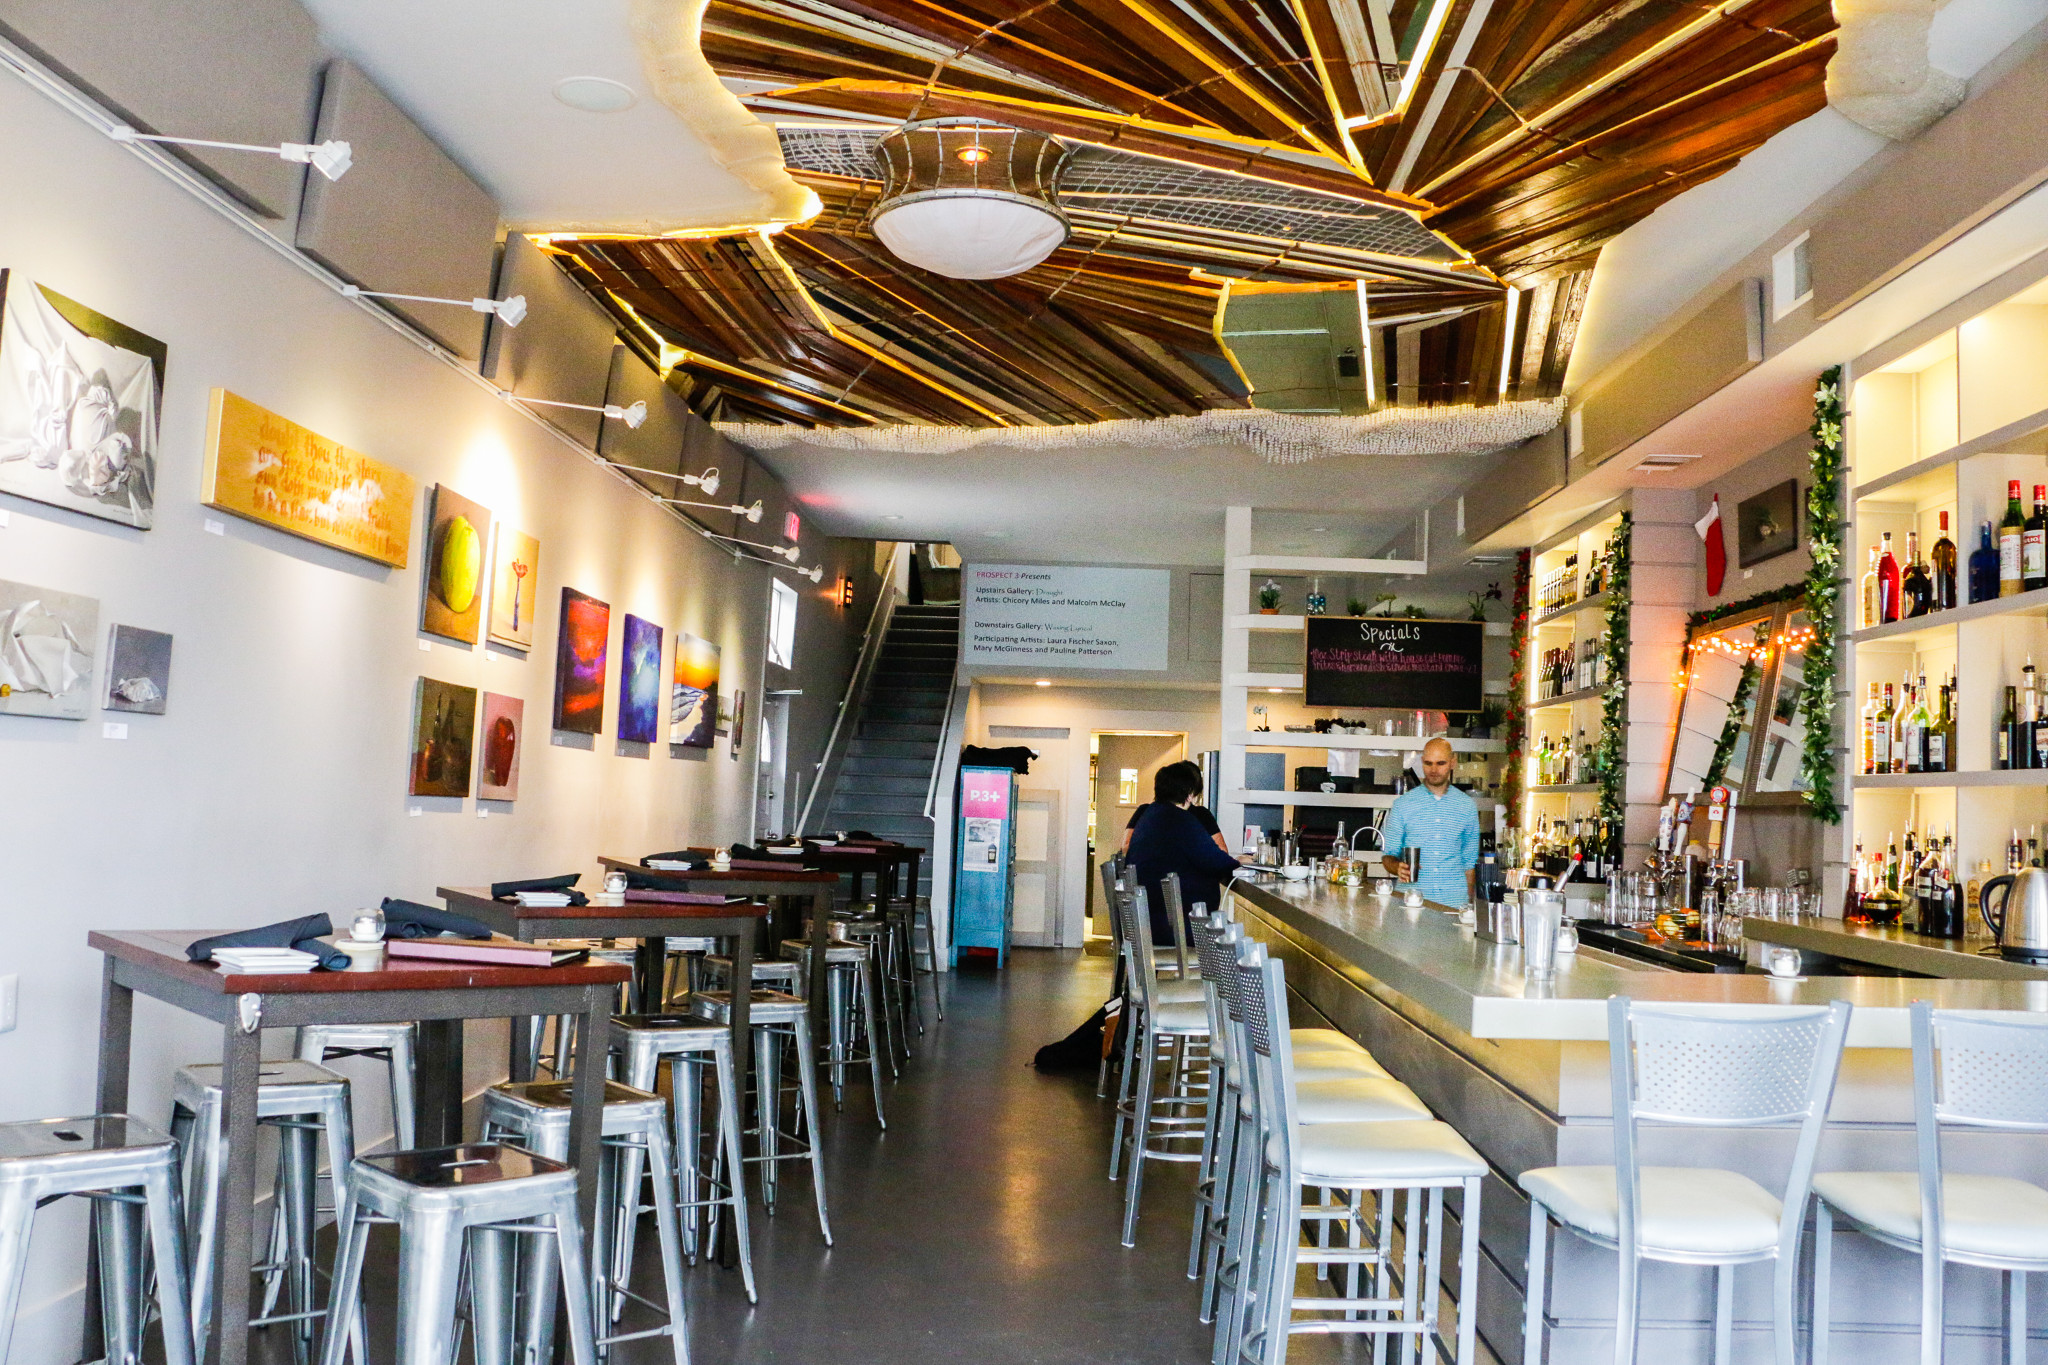 Treo features mesmerizing decor and rotating artwork from local artists, plus food from acclaimed Chef Michael Gulotta. (Photo: Rebecca Ratliff)